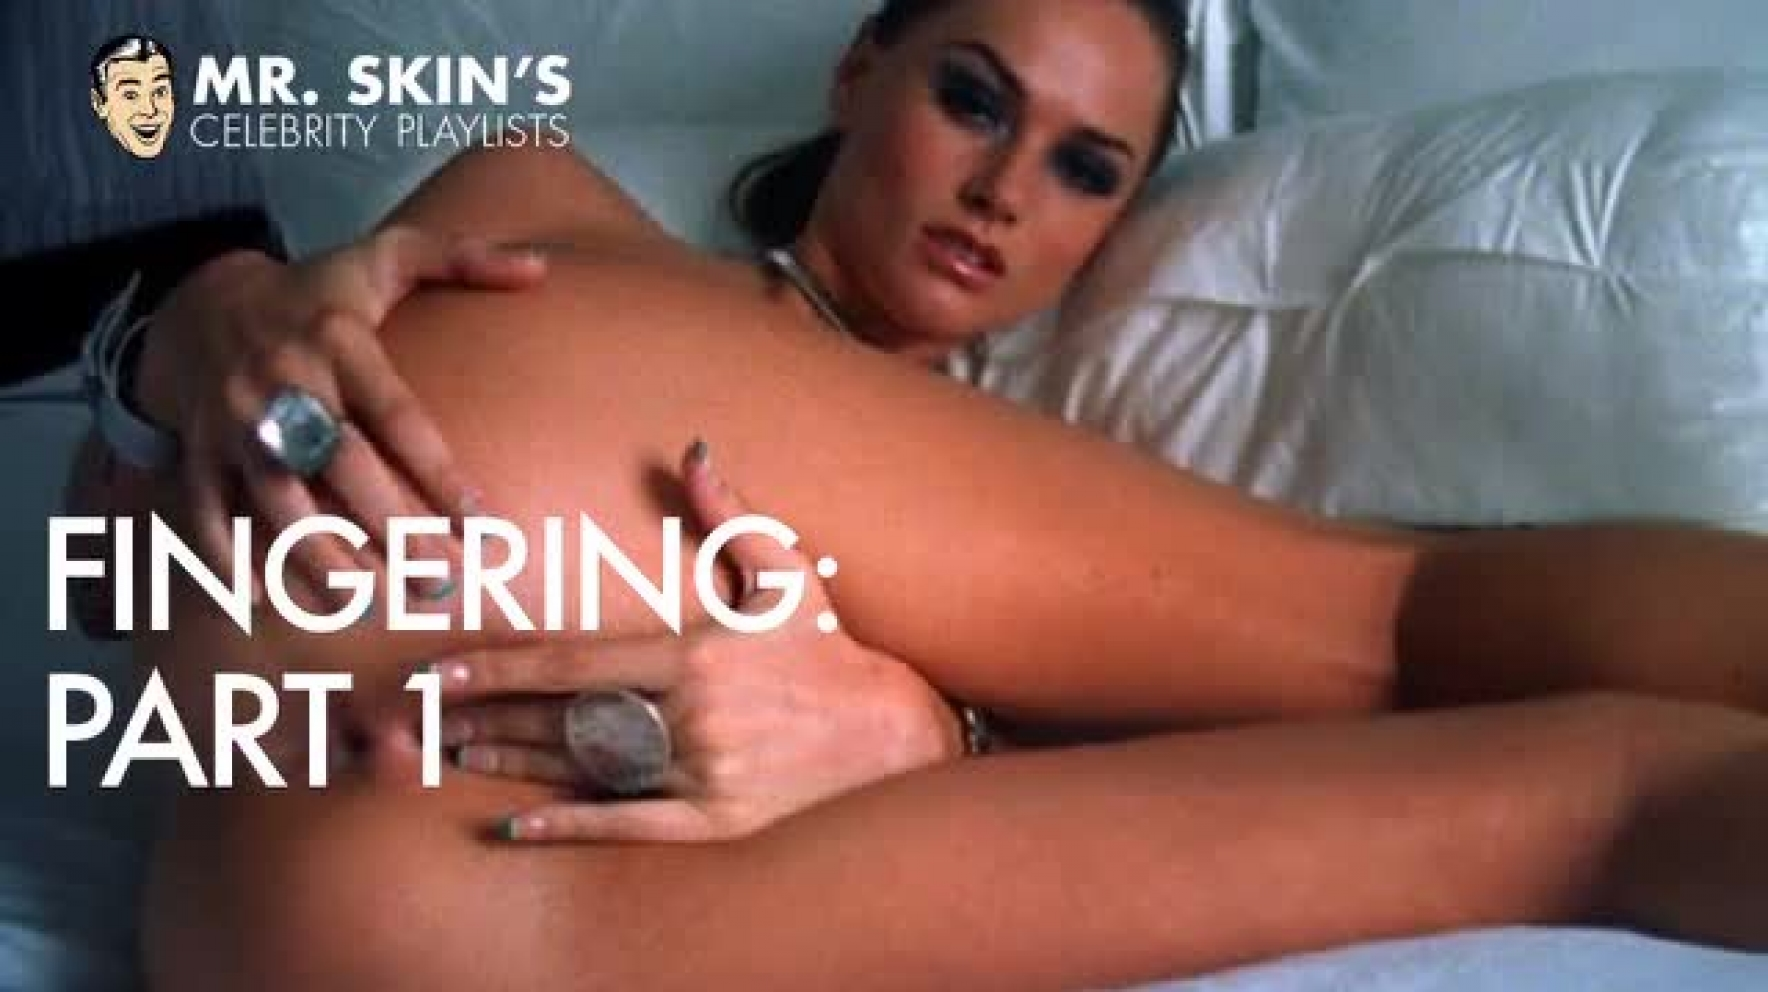 Mainstream Fingering Scène 1